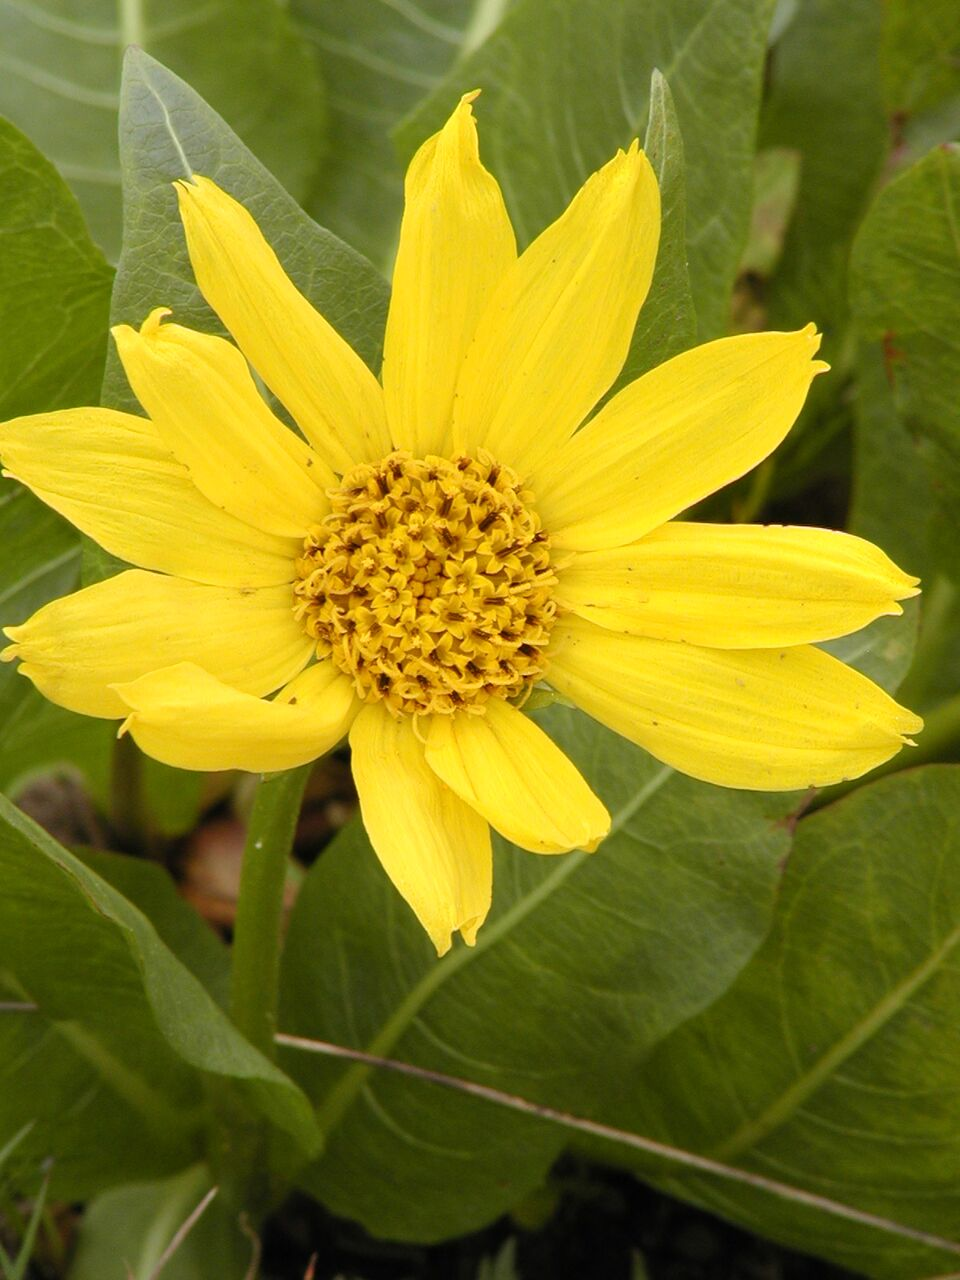 Ron Halvorson also contributed gorgeous photos like this one of mule's ears (Wyethia amplexicaulis).